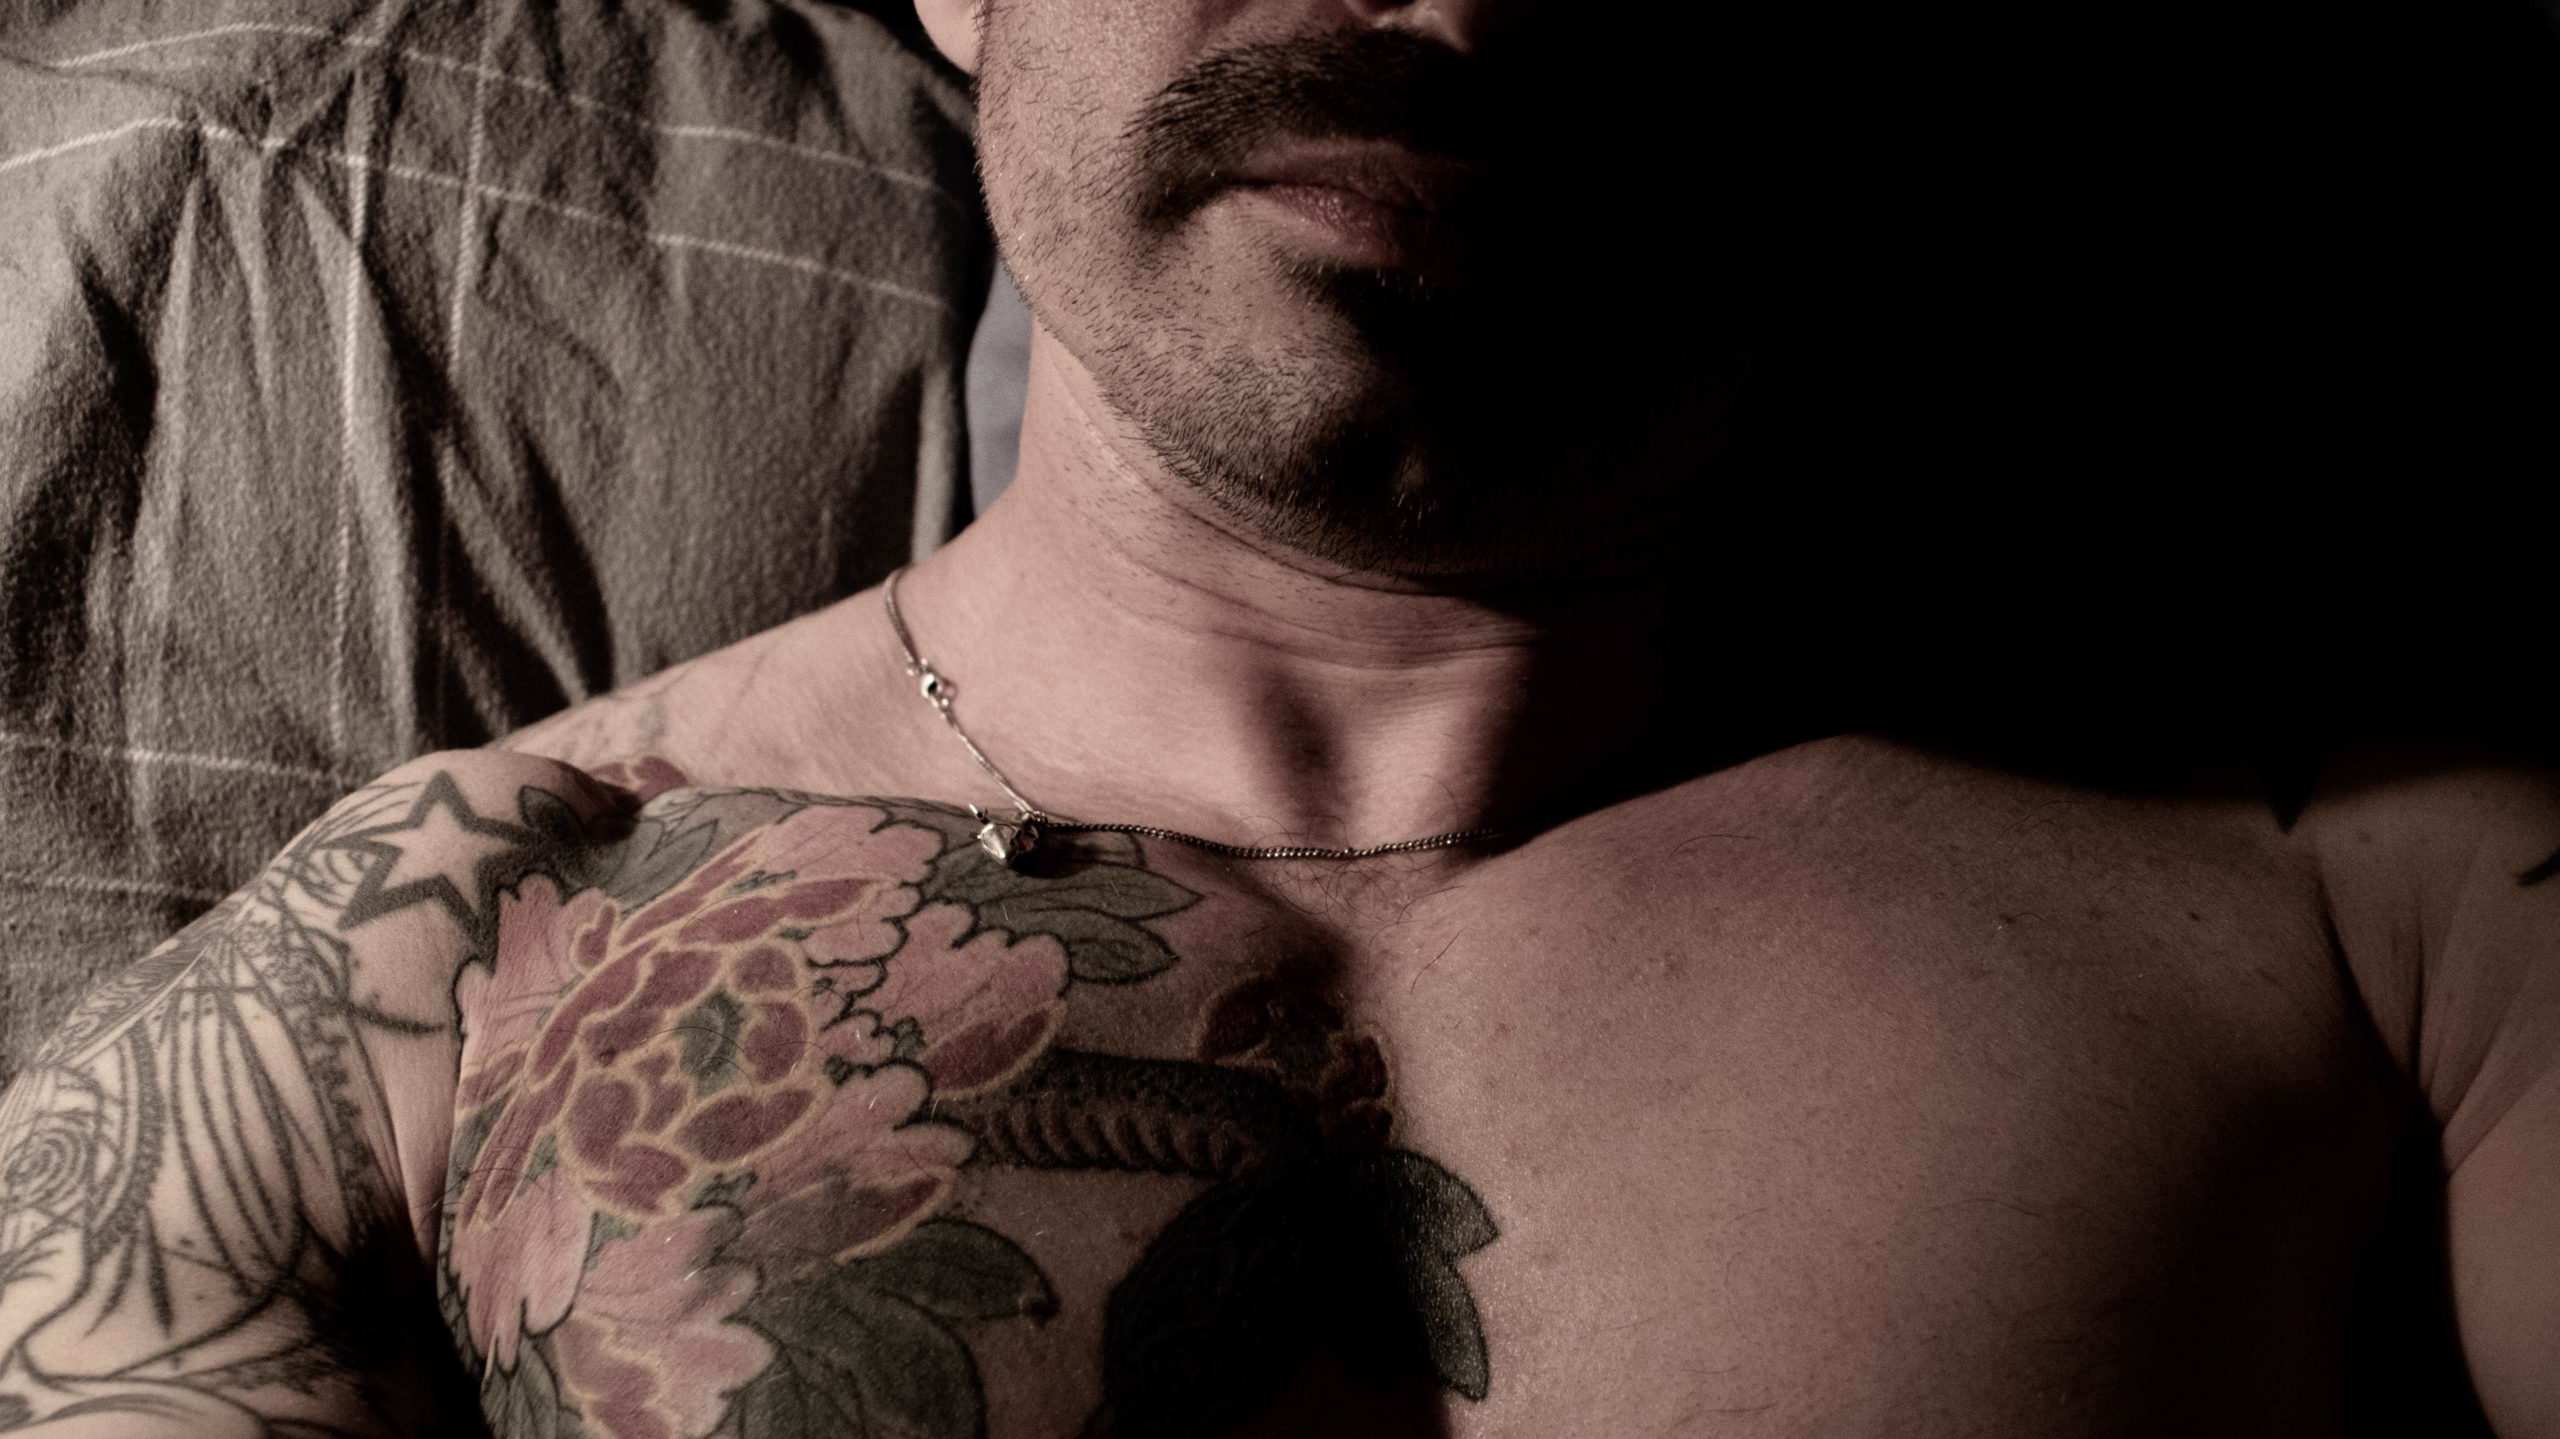 Tattooed torso and lower face of male online sex worker wearing necklace